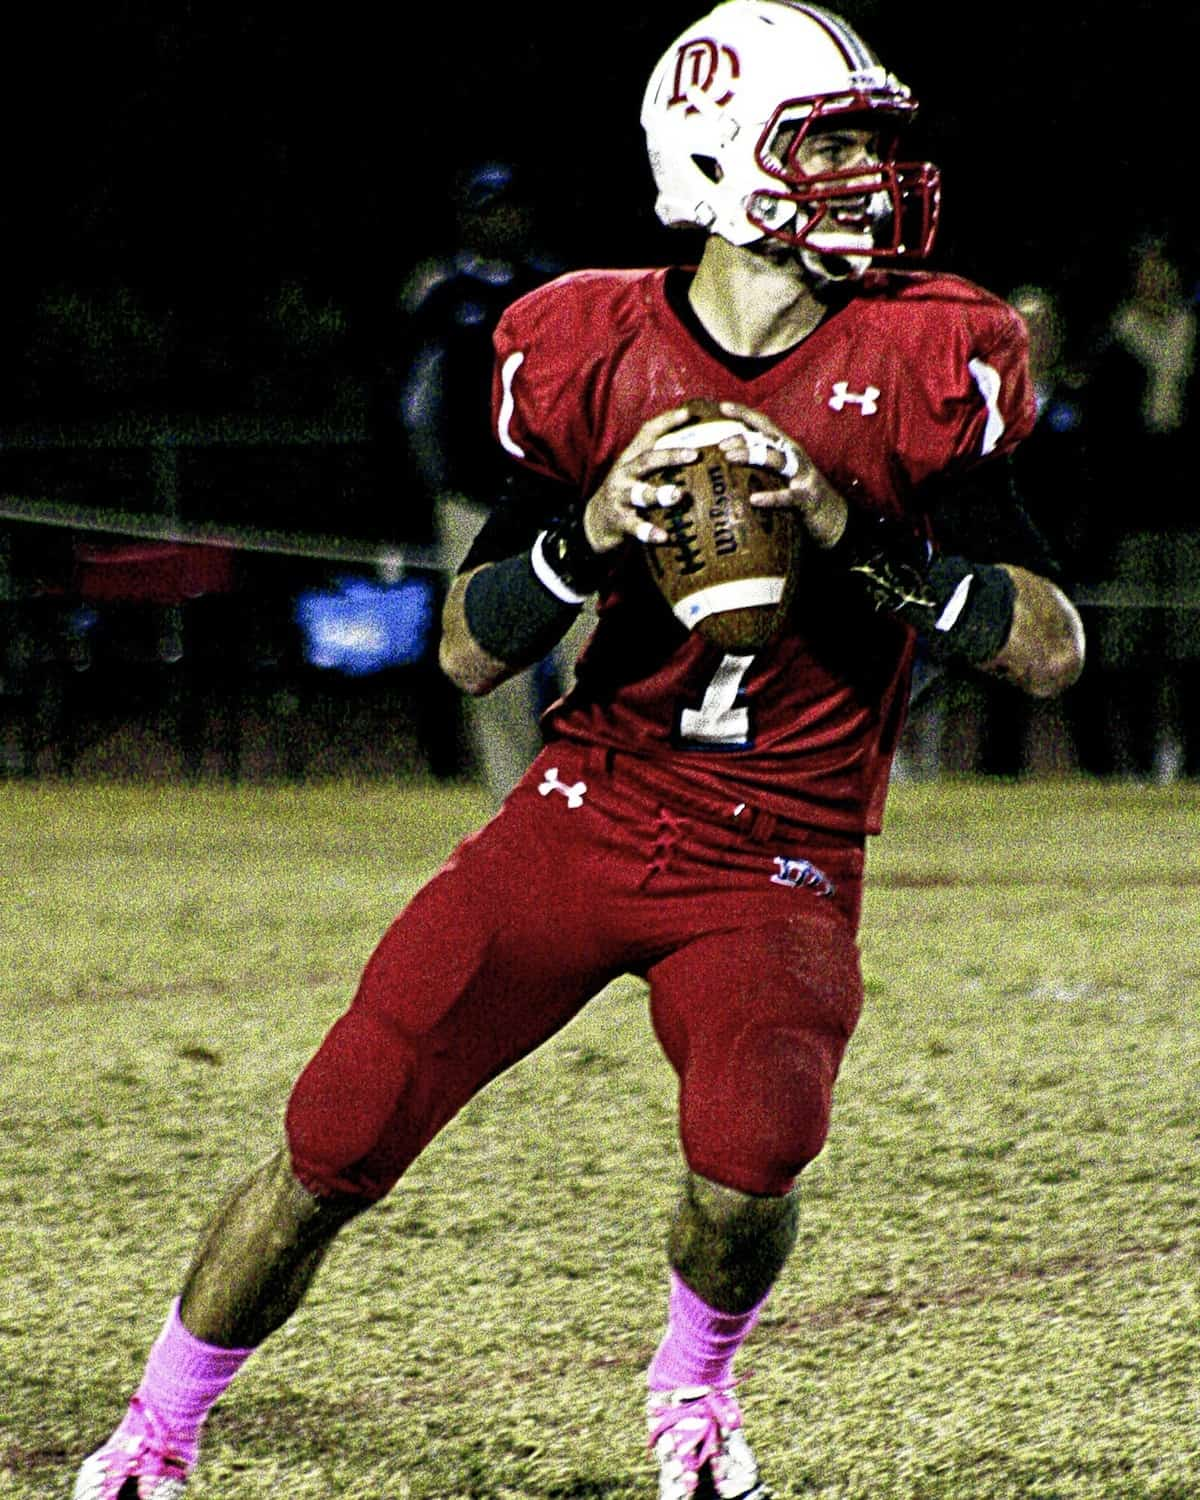 Florida commitment Will Grier will play in the U.S. Army All-American Bowl in San Antonio / Photo courtesy of Lakeview Publications.